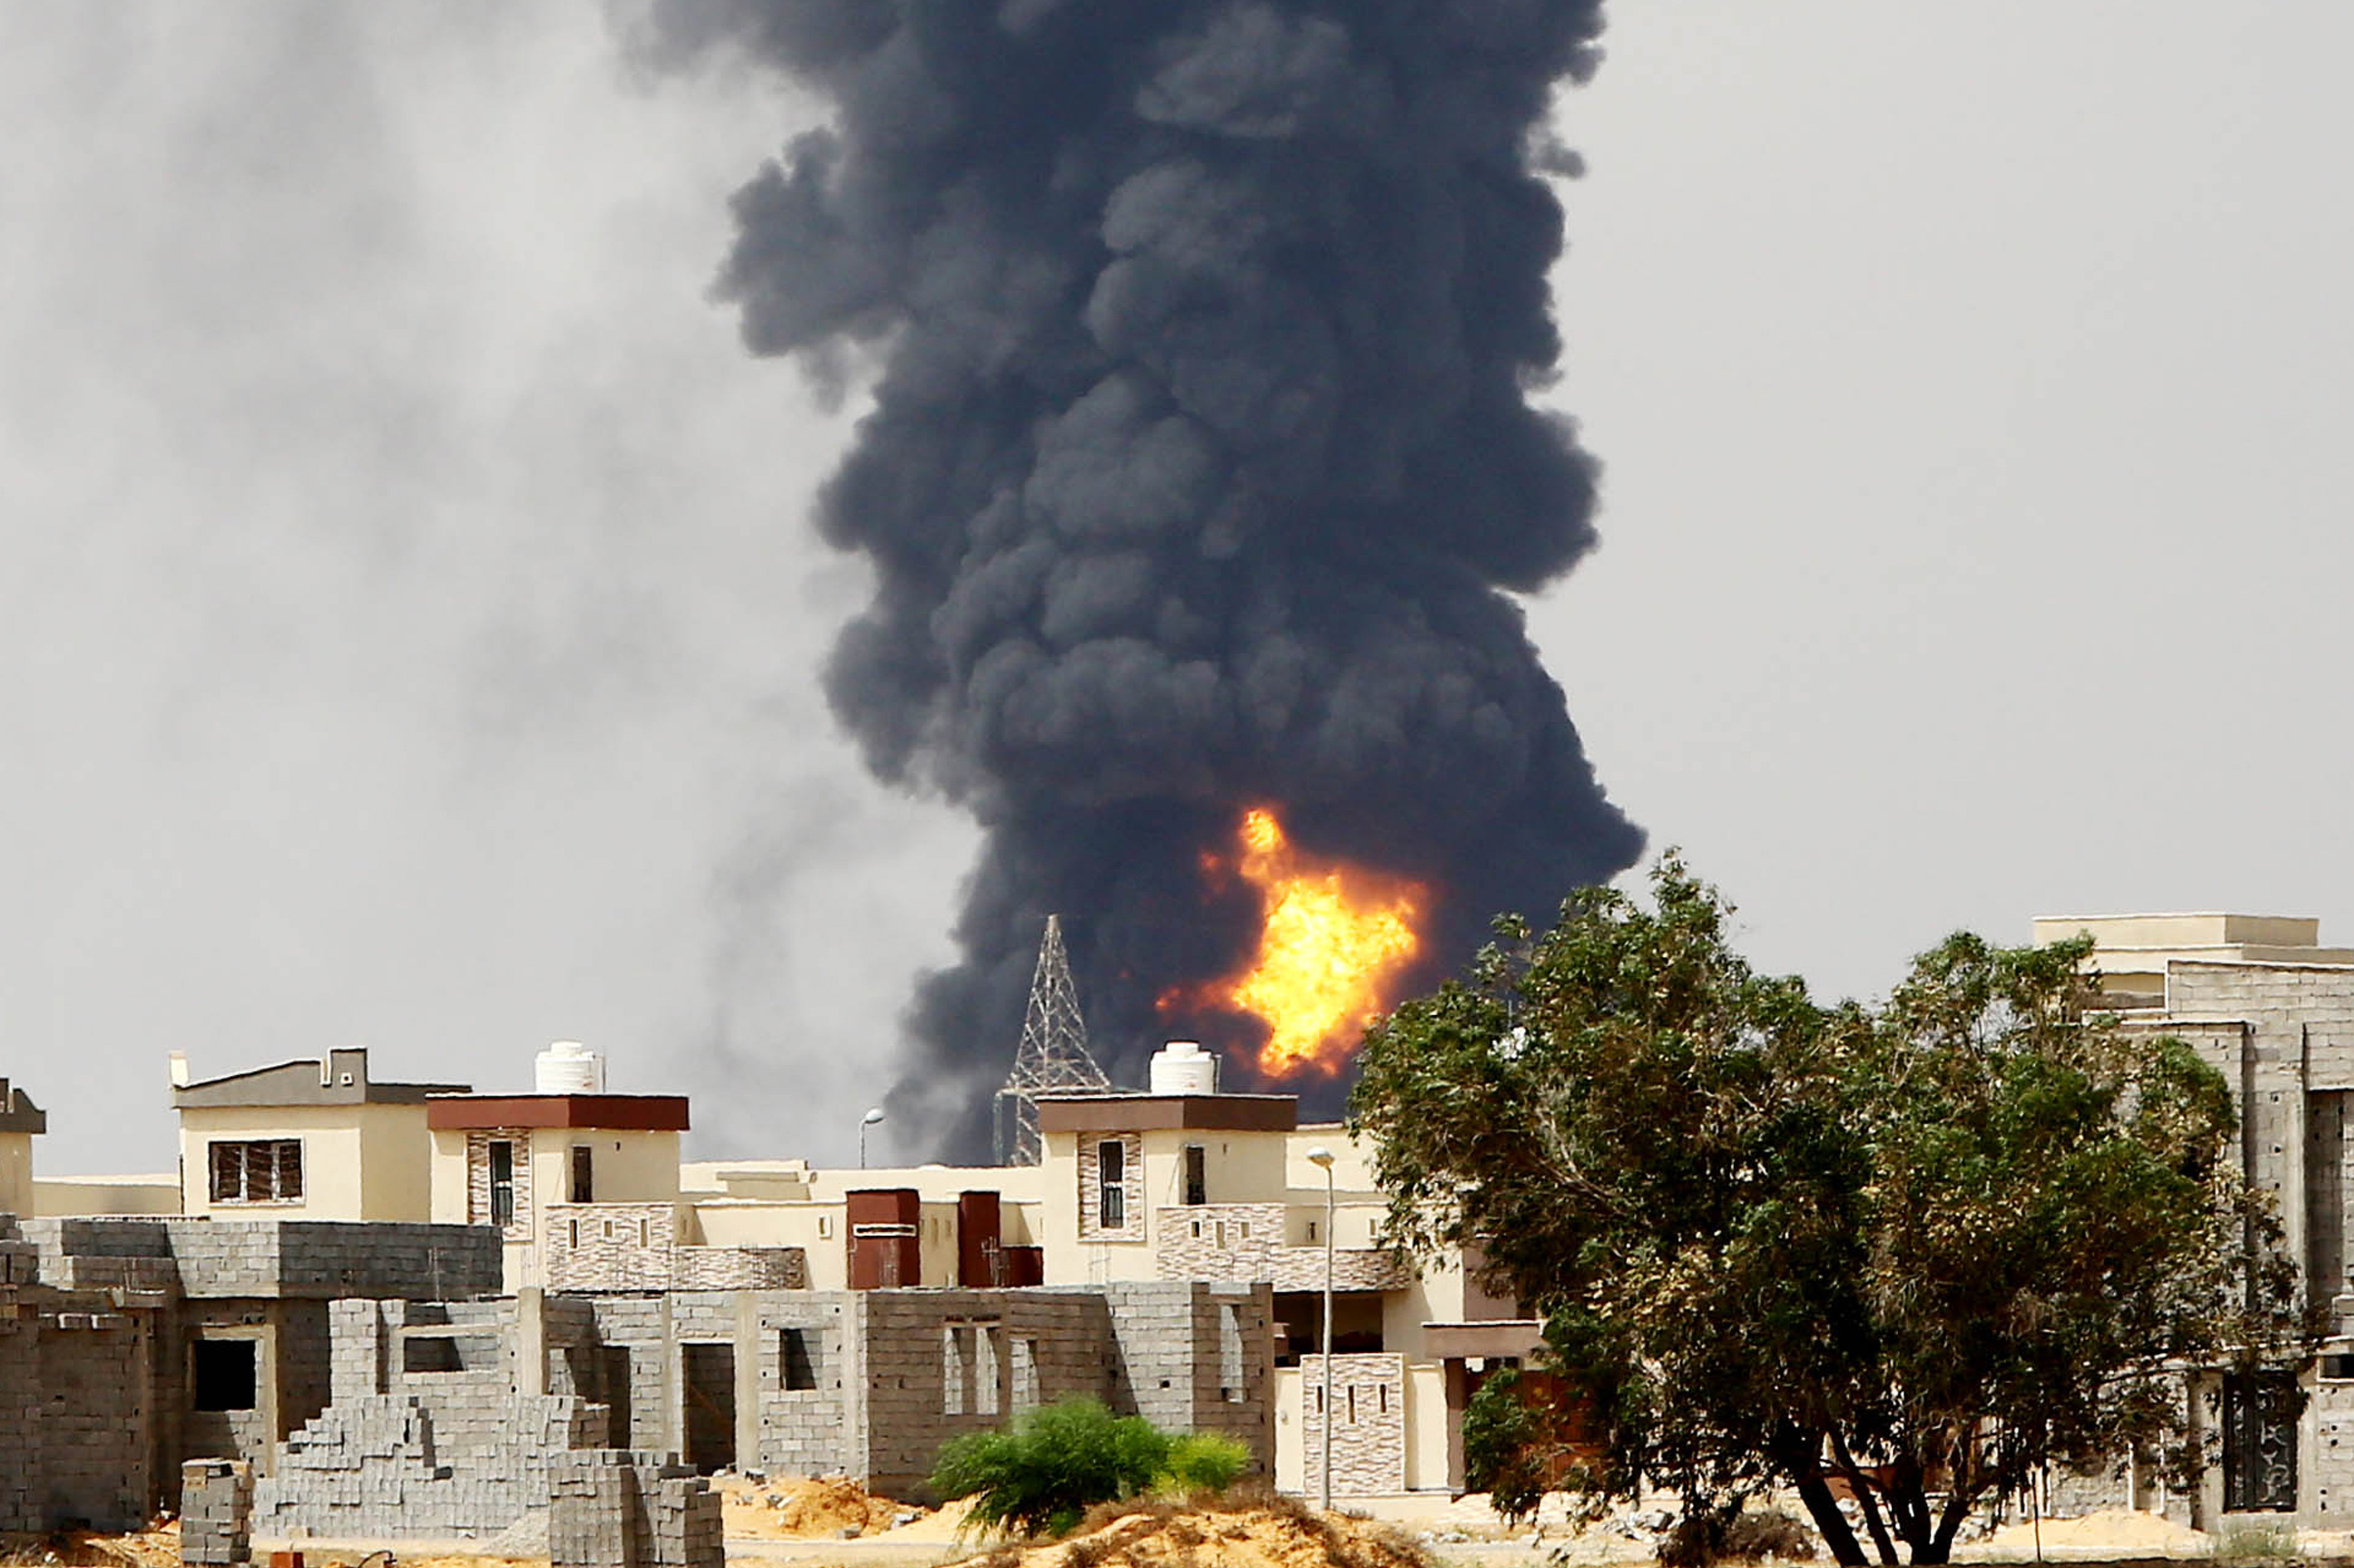 A picture taken on July 28, 2014 shows flames and smoke billowing from an oil depot where a huge blaze started following clashes around Tripoli airport, in southern Tripoli